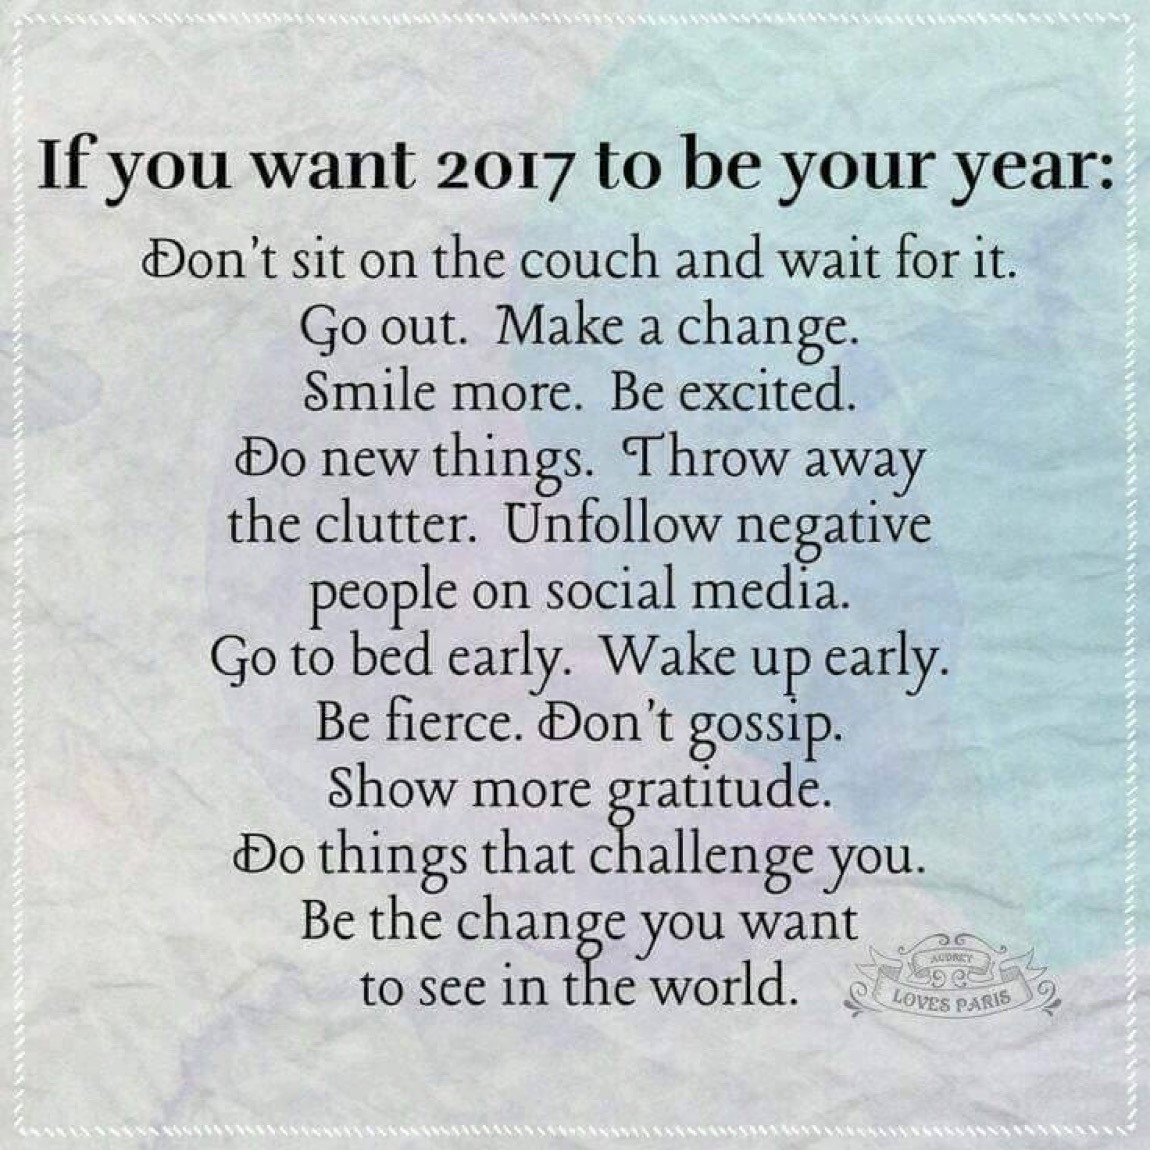 Picture of motivational quote about what to do in 2017.